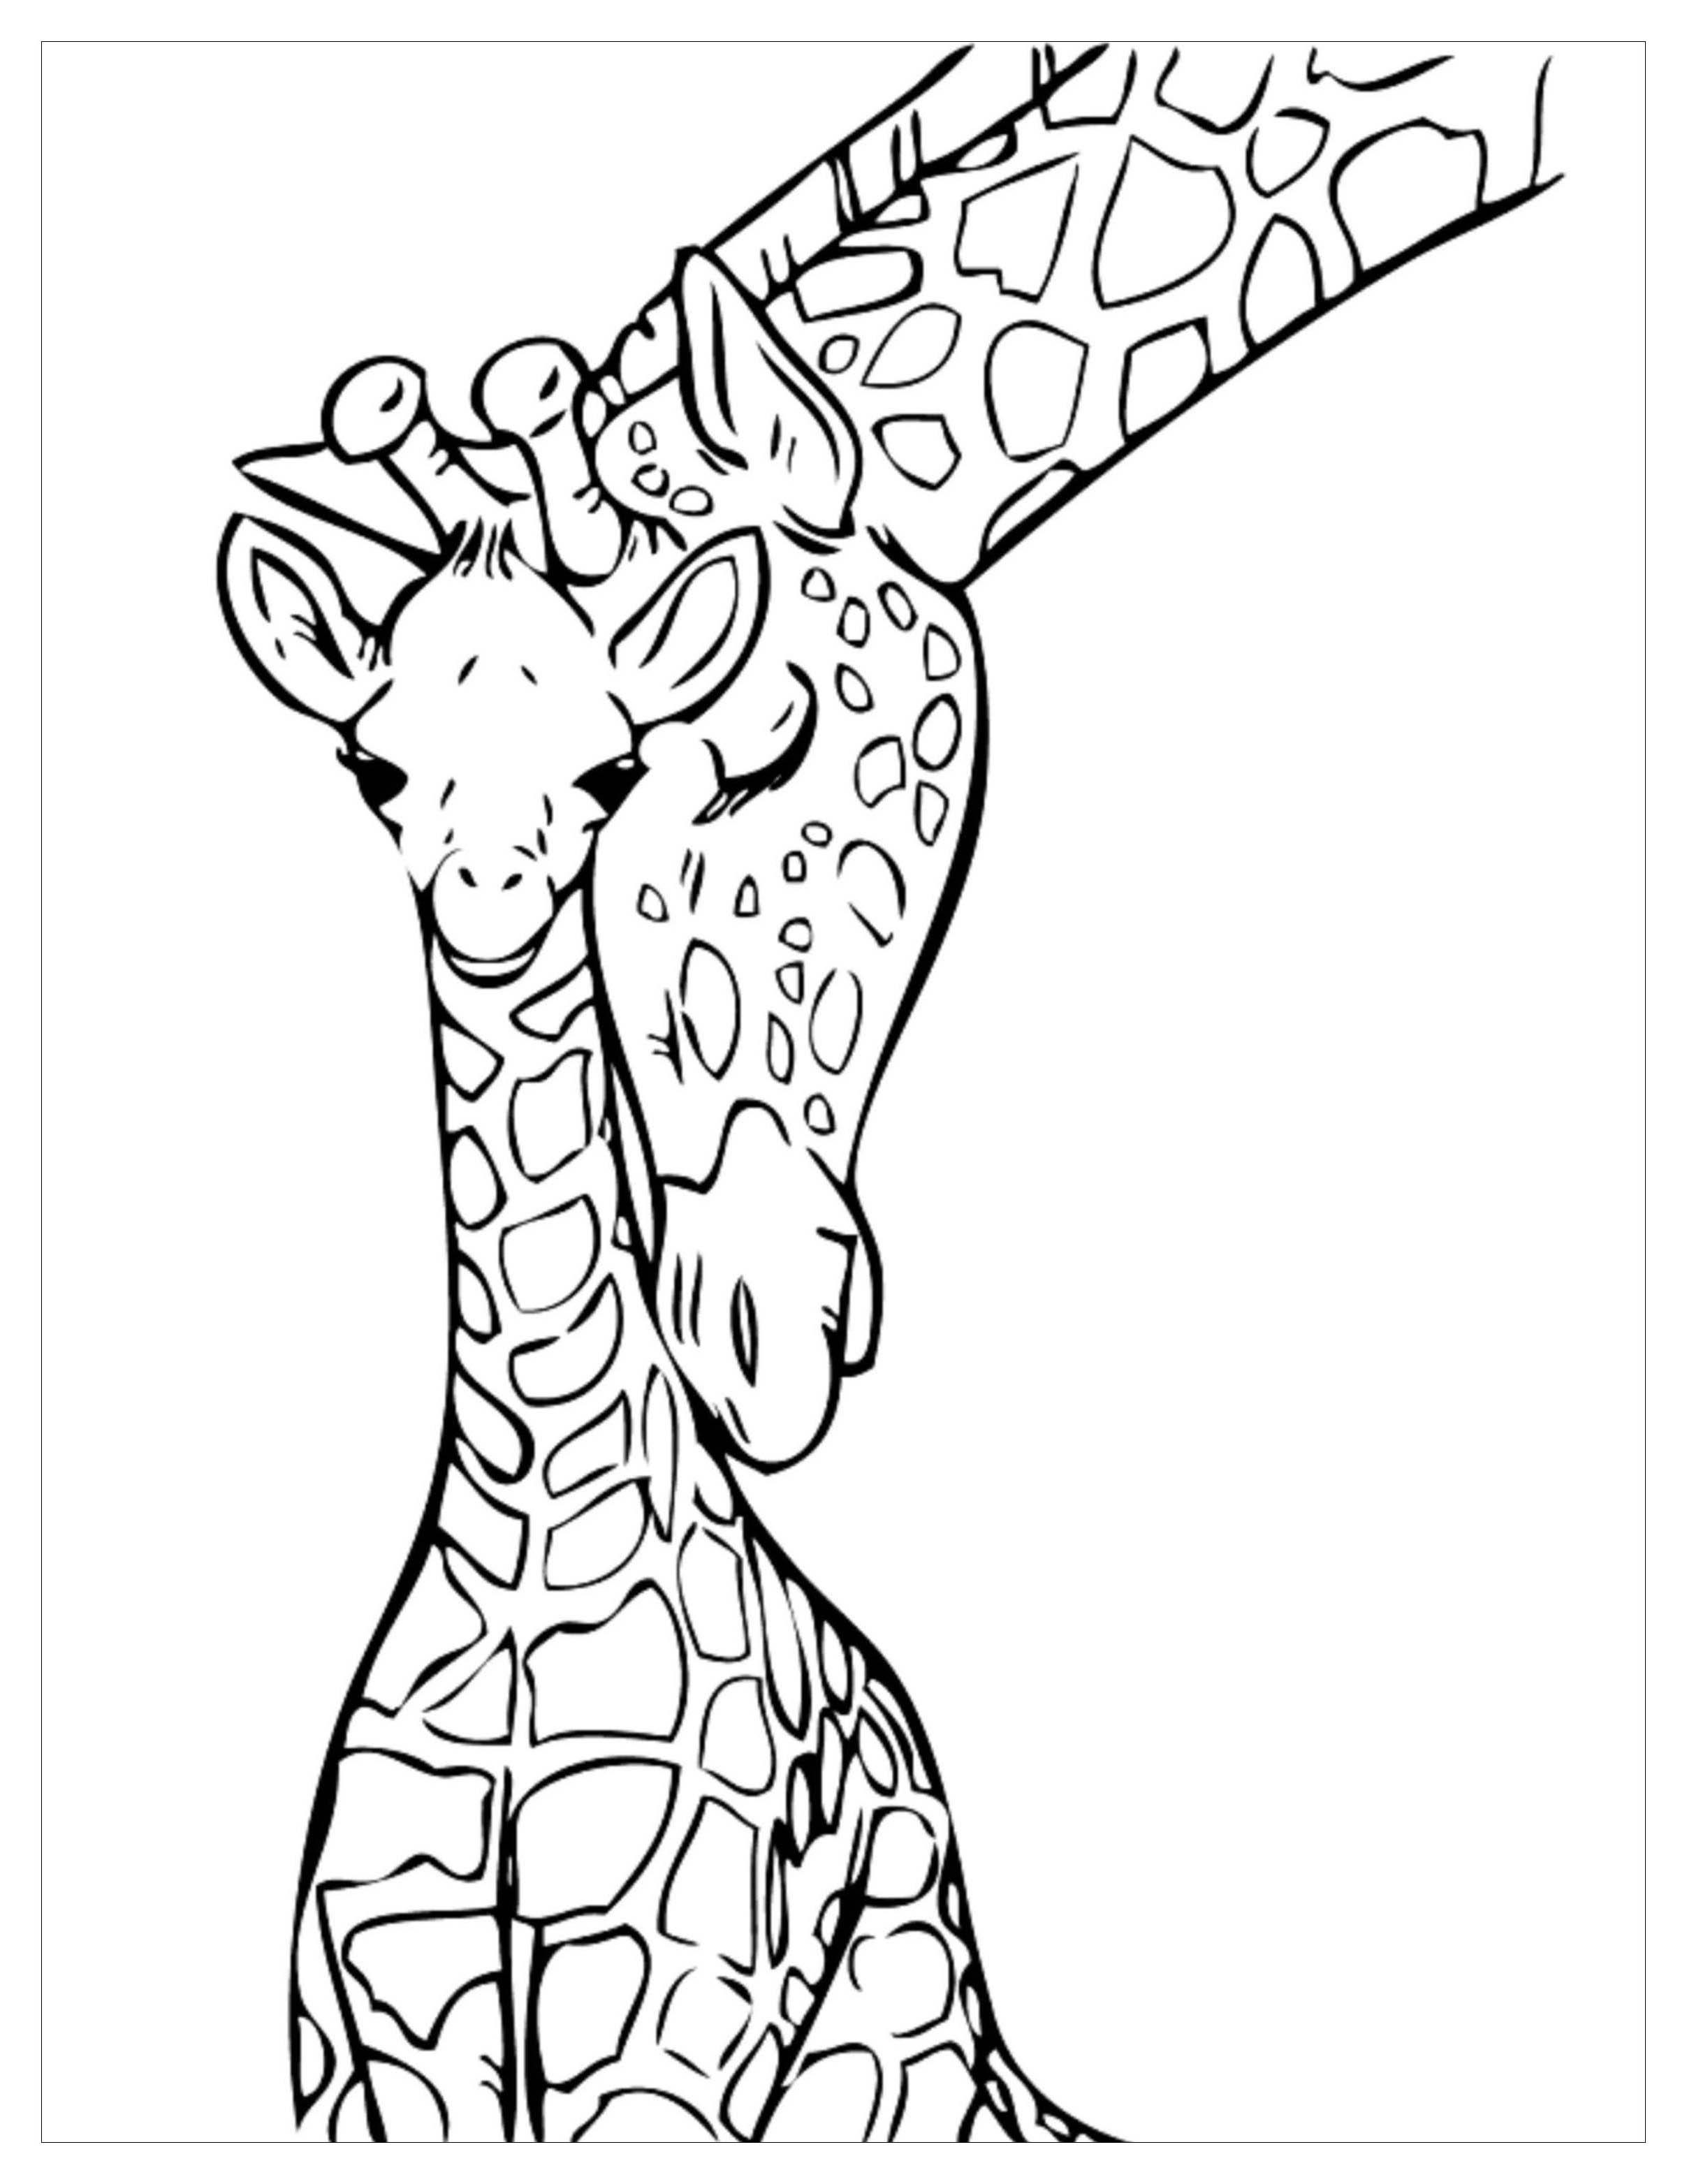 Funny Giraffes coloring page